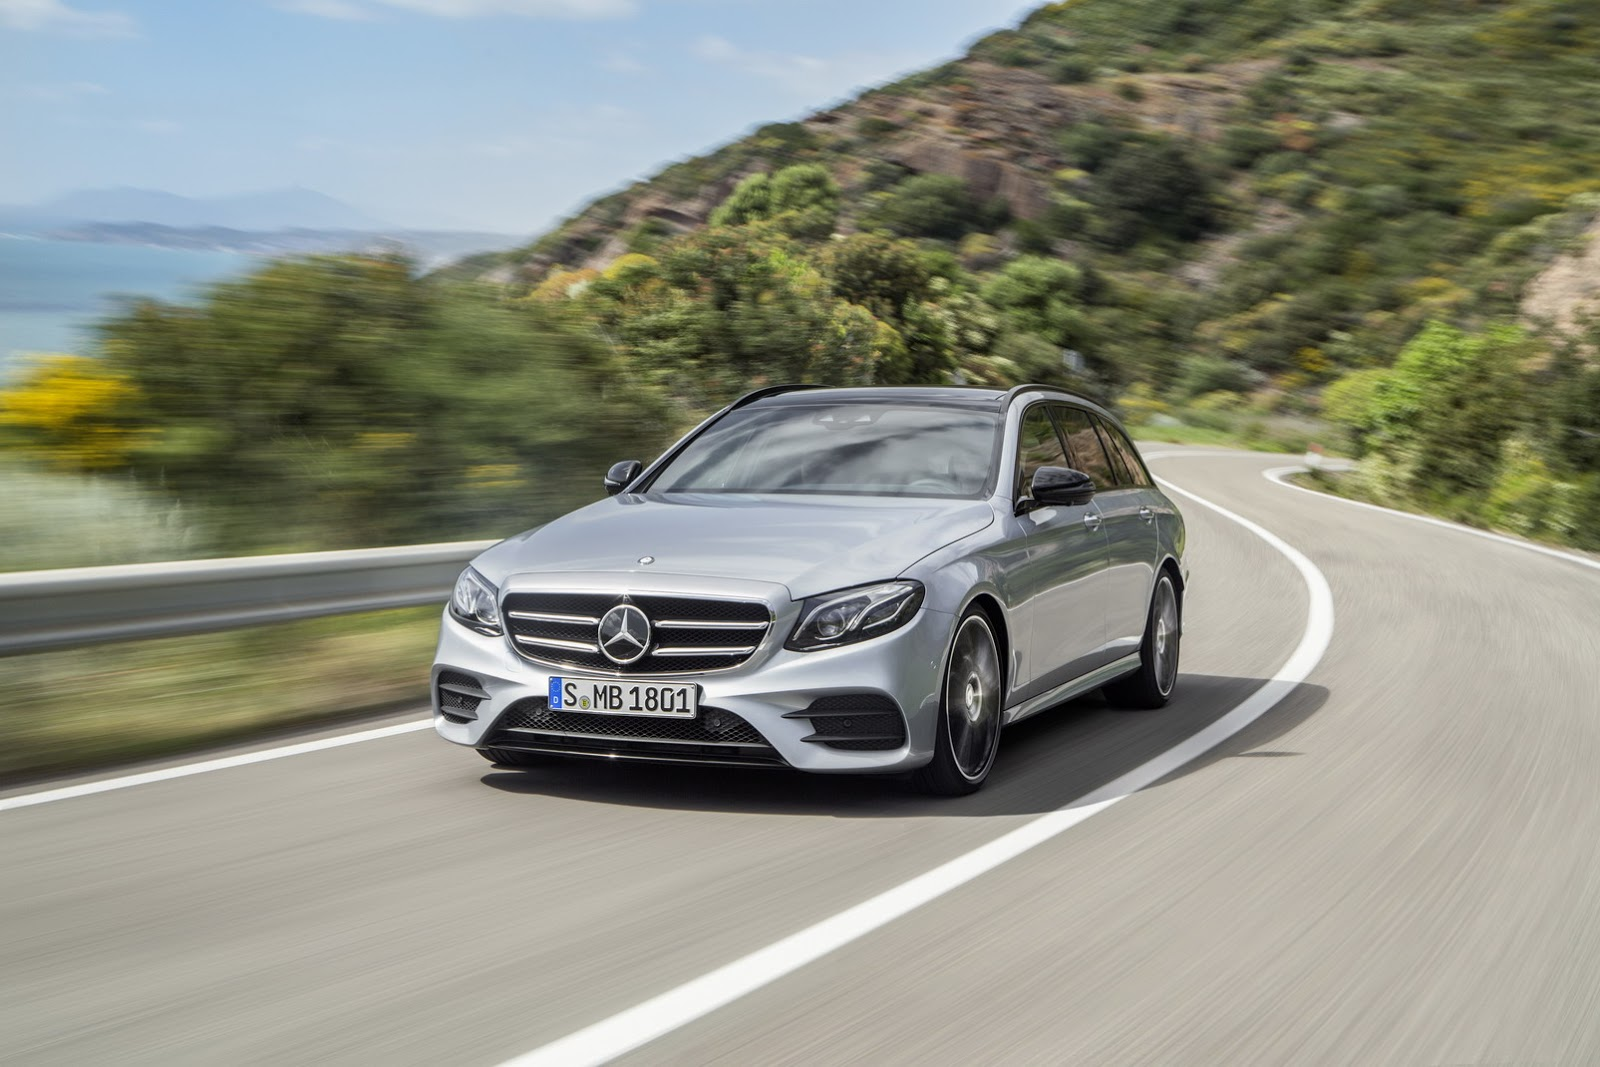 New 2017 mercedes benz e class estate unveiled gets 396hp for Mercedes benz estate cars